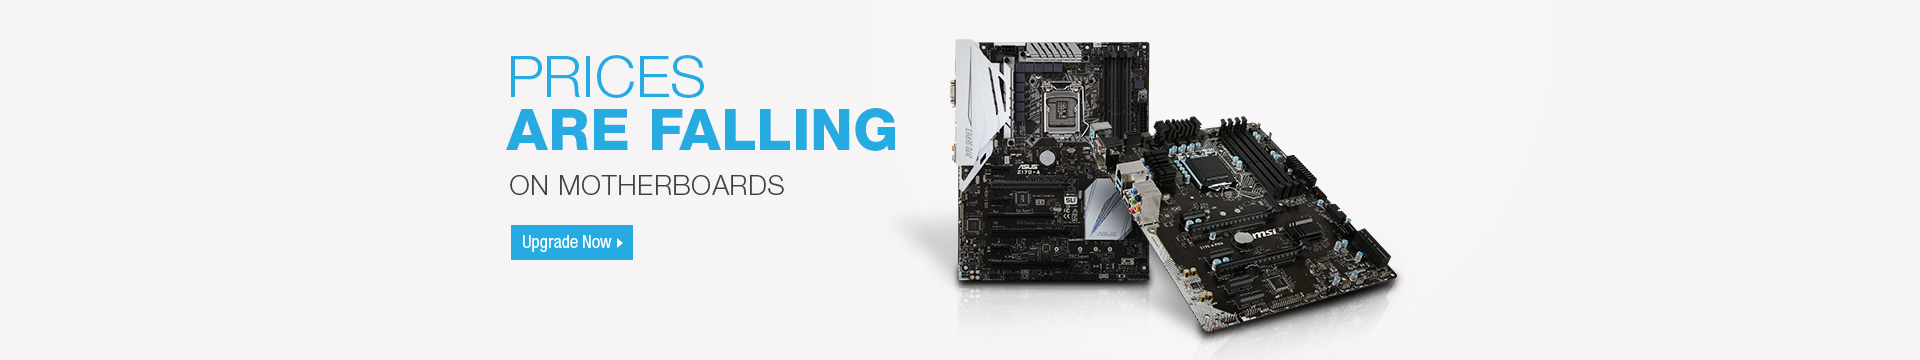 Prices are falling on motherboards